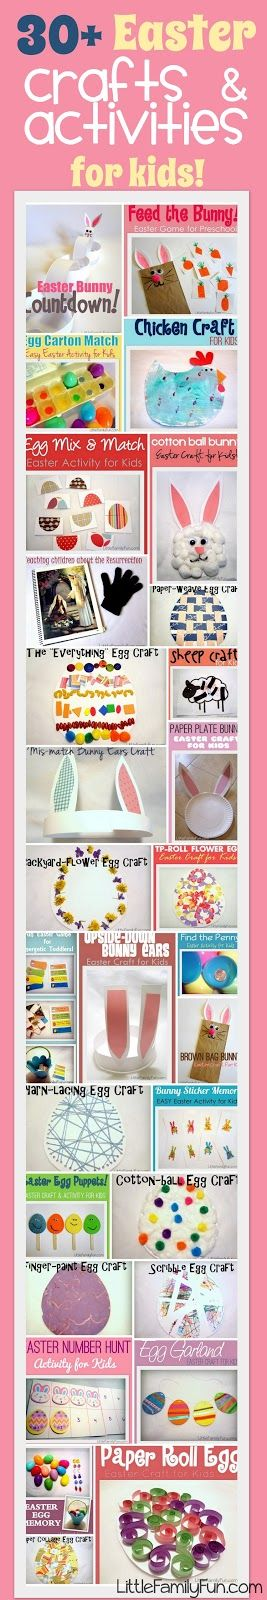 Lots of FUN ideas for kids! Simple crafts and activities for Easter.